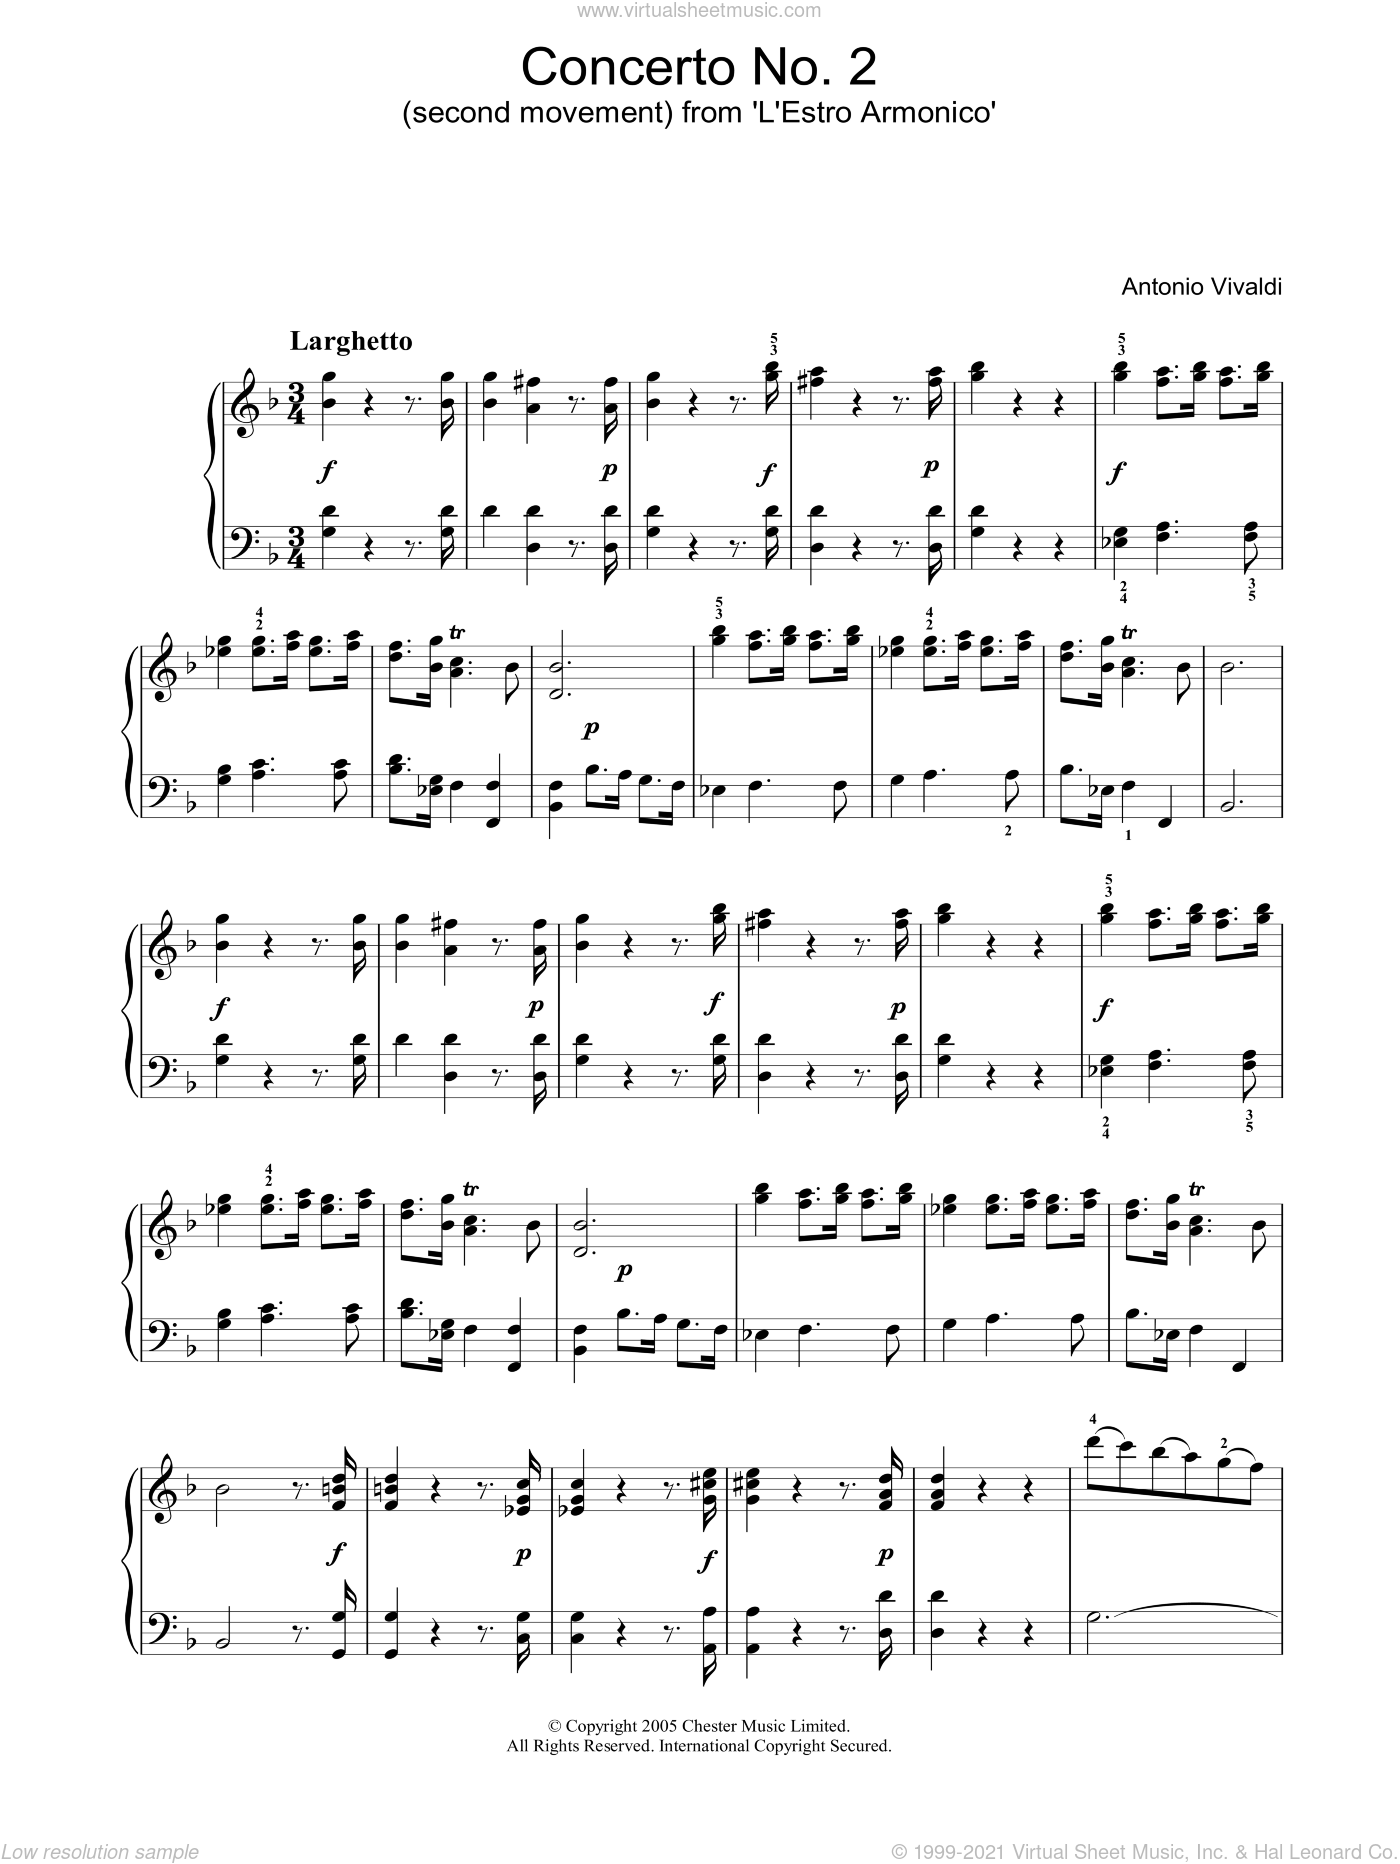 Concerto No.2 (2nd Movement: Larghetto) from 'L'Estro Armonico' Op.3 sheet music for piano solo by Antonio Vivaldi